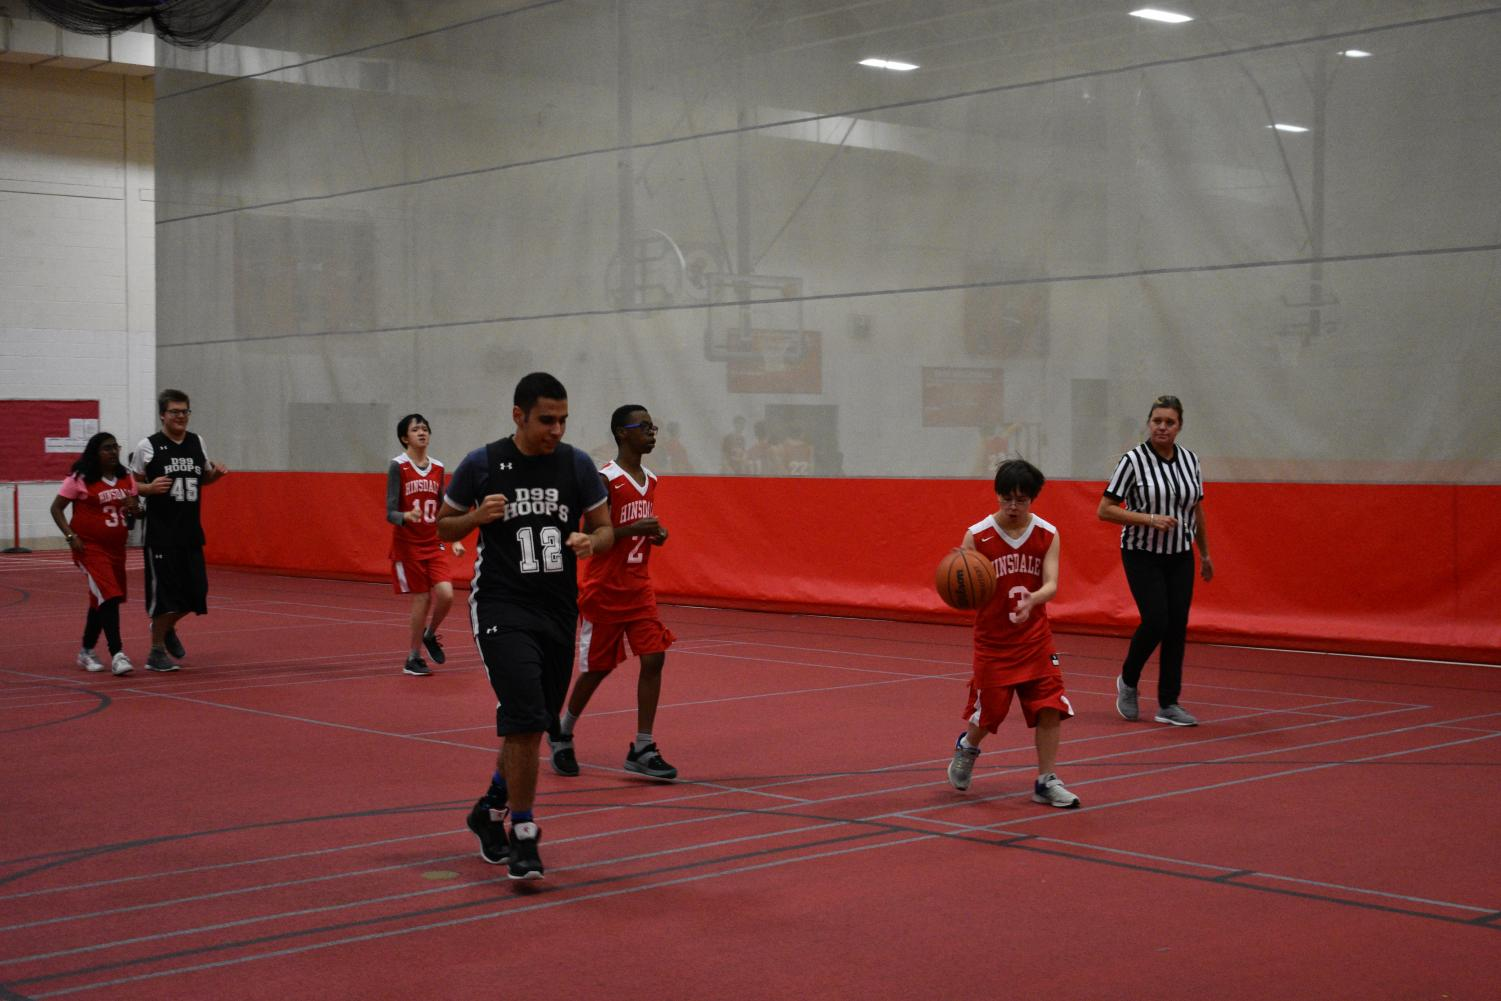 The Special Olympics basketball team played on Wednesday, Nov. 28 in the field house.